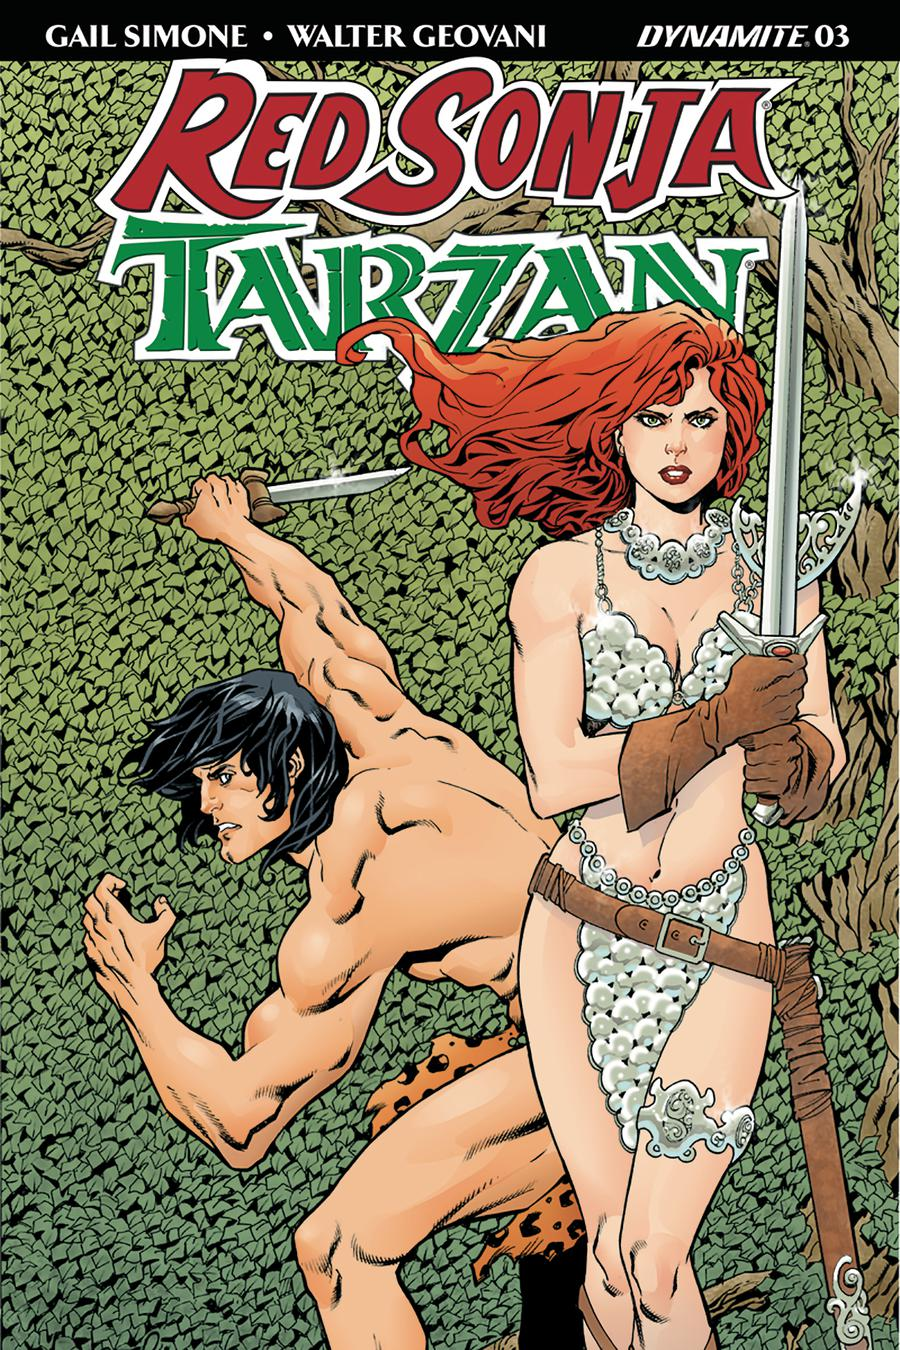 Red Sonja Tarzan #3 Cover A Regular Aaron Lopresti Cover